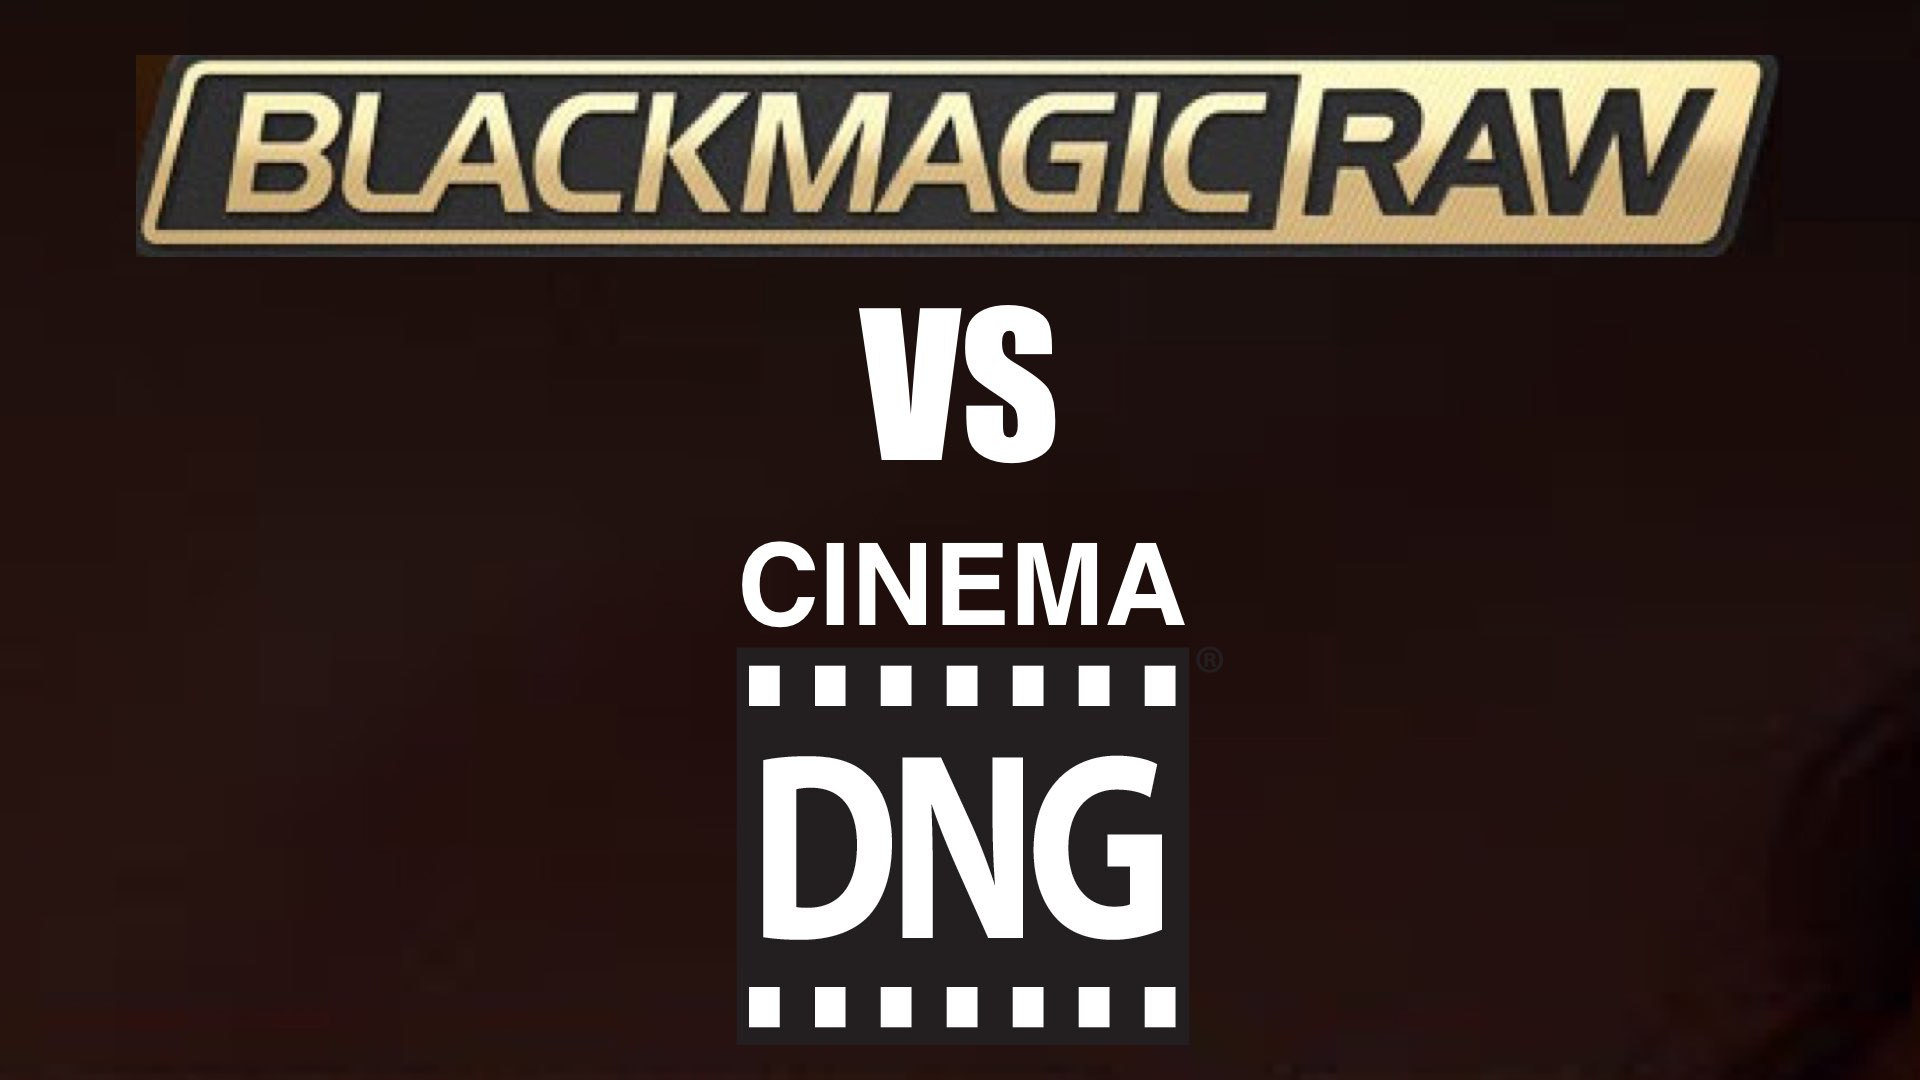 Blackmagic RAW (BRAW) vs Cinema DNG (CDNG): Comparison and Insights